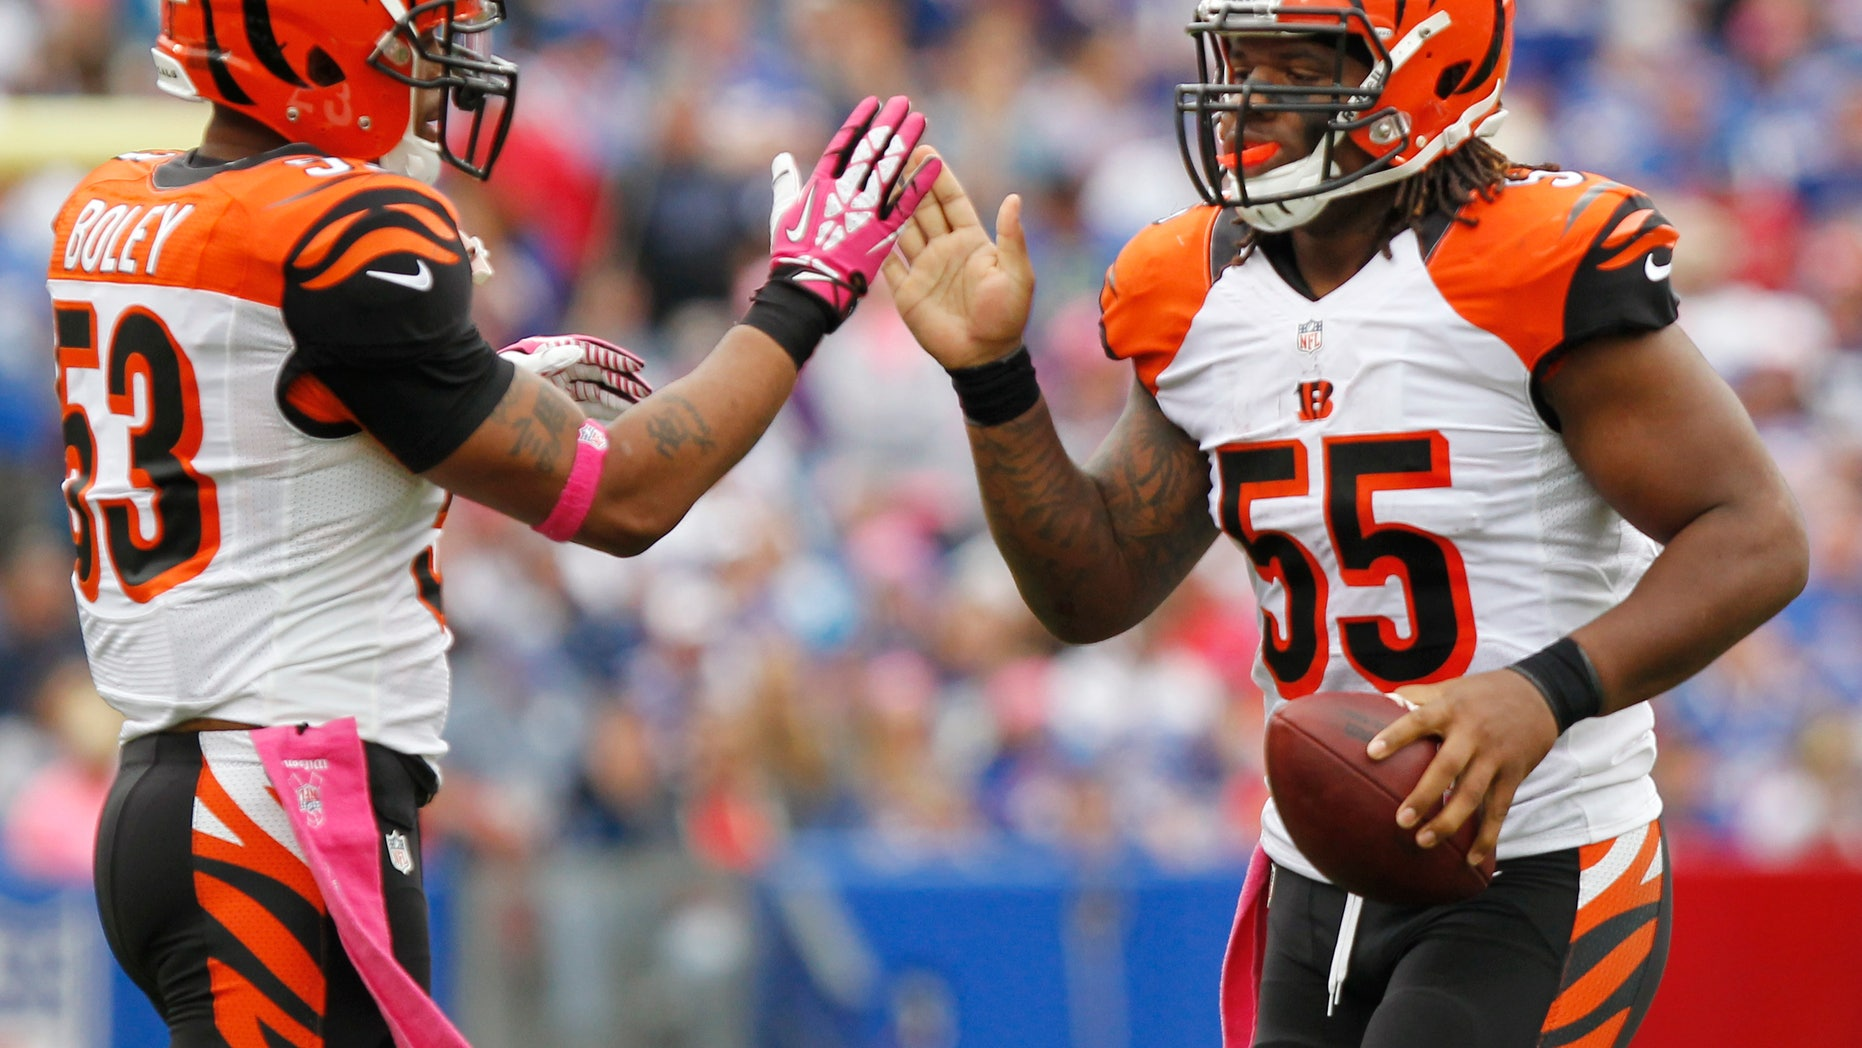 Cincinnati Bengals outside linebacker Vontaze Burfict (55) is greeted by Michael Boley after recovering a fumble against the Buffalo Bills in the third quarter of an NFL football game on Sunday, Oct. 13, 2013, in Orchard Park, N.Y. The Bengals beat the Bills 27-24. (AP Photo/Bill Wippert)